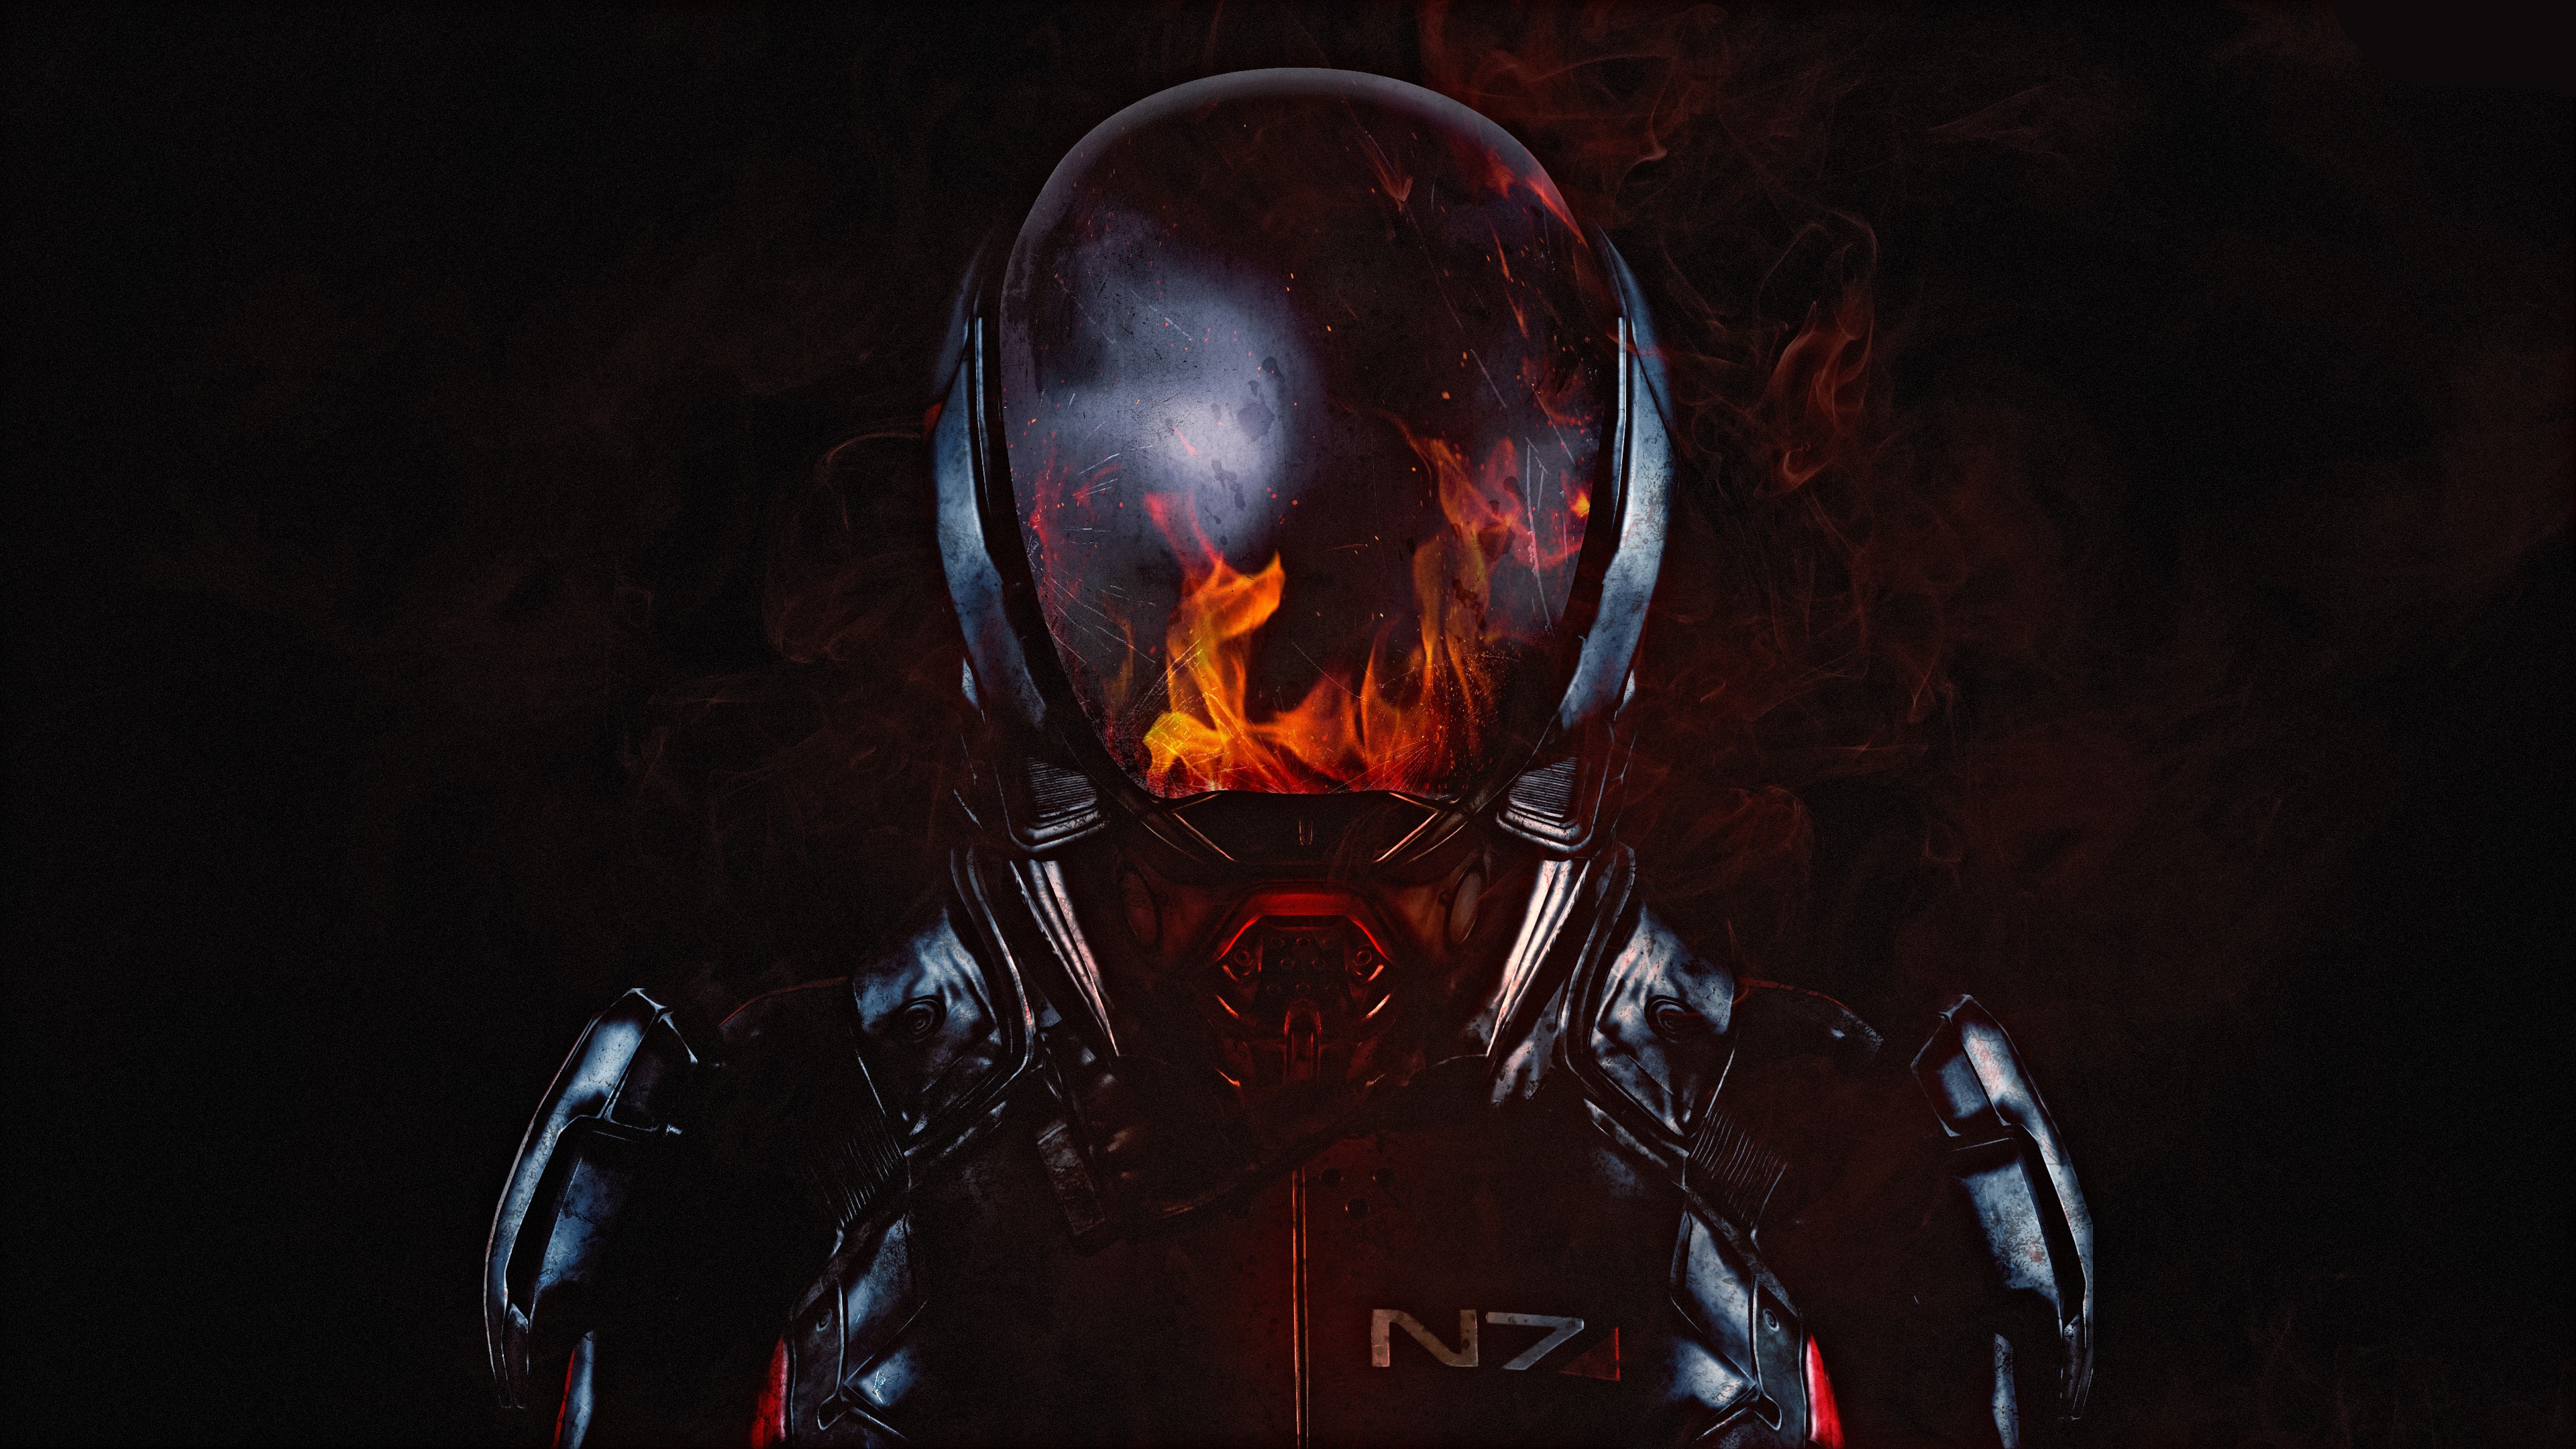 Jarvis Iphone Wallpaper Fire Mass Effect Andromeda 4k Wallpapers Hd Wallpapers